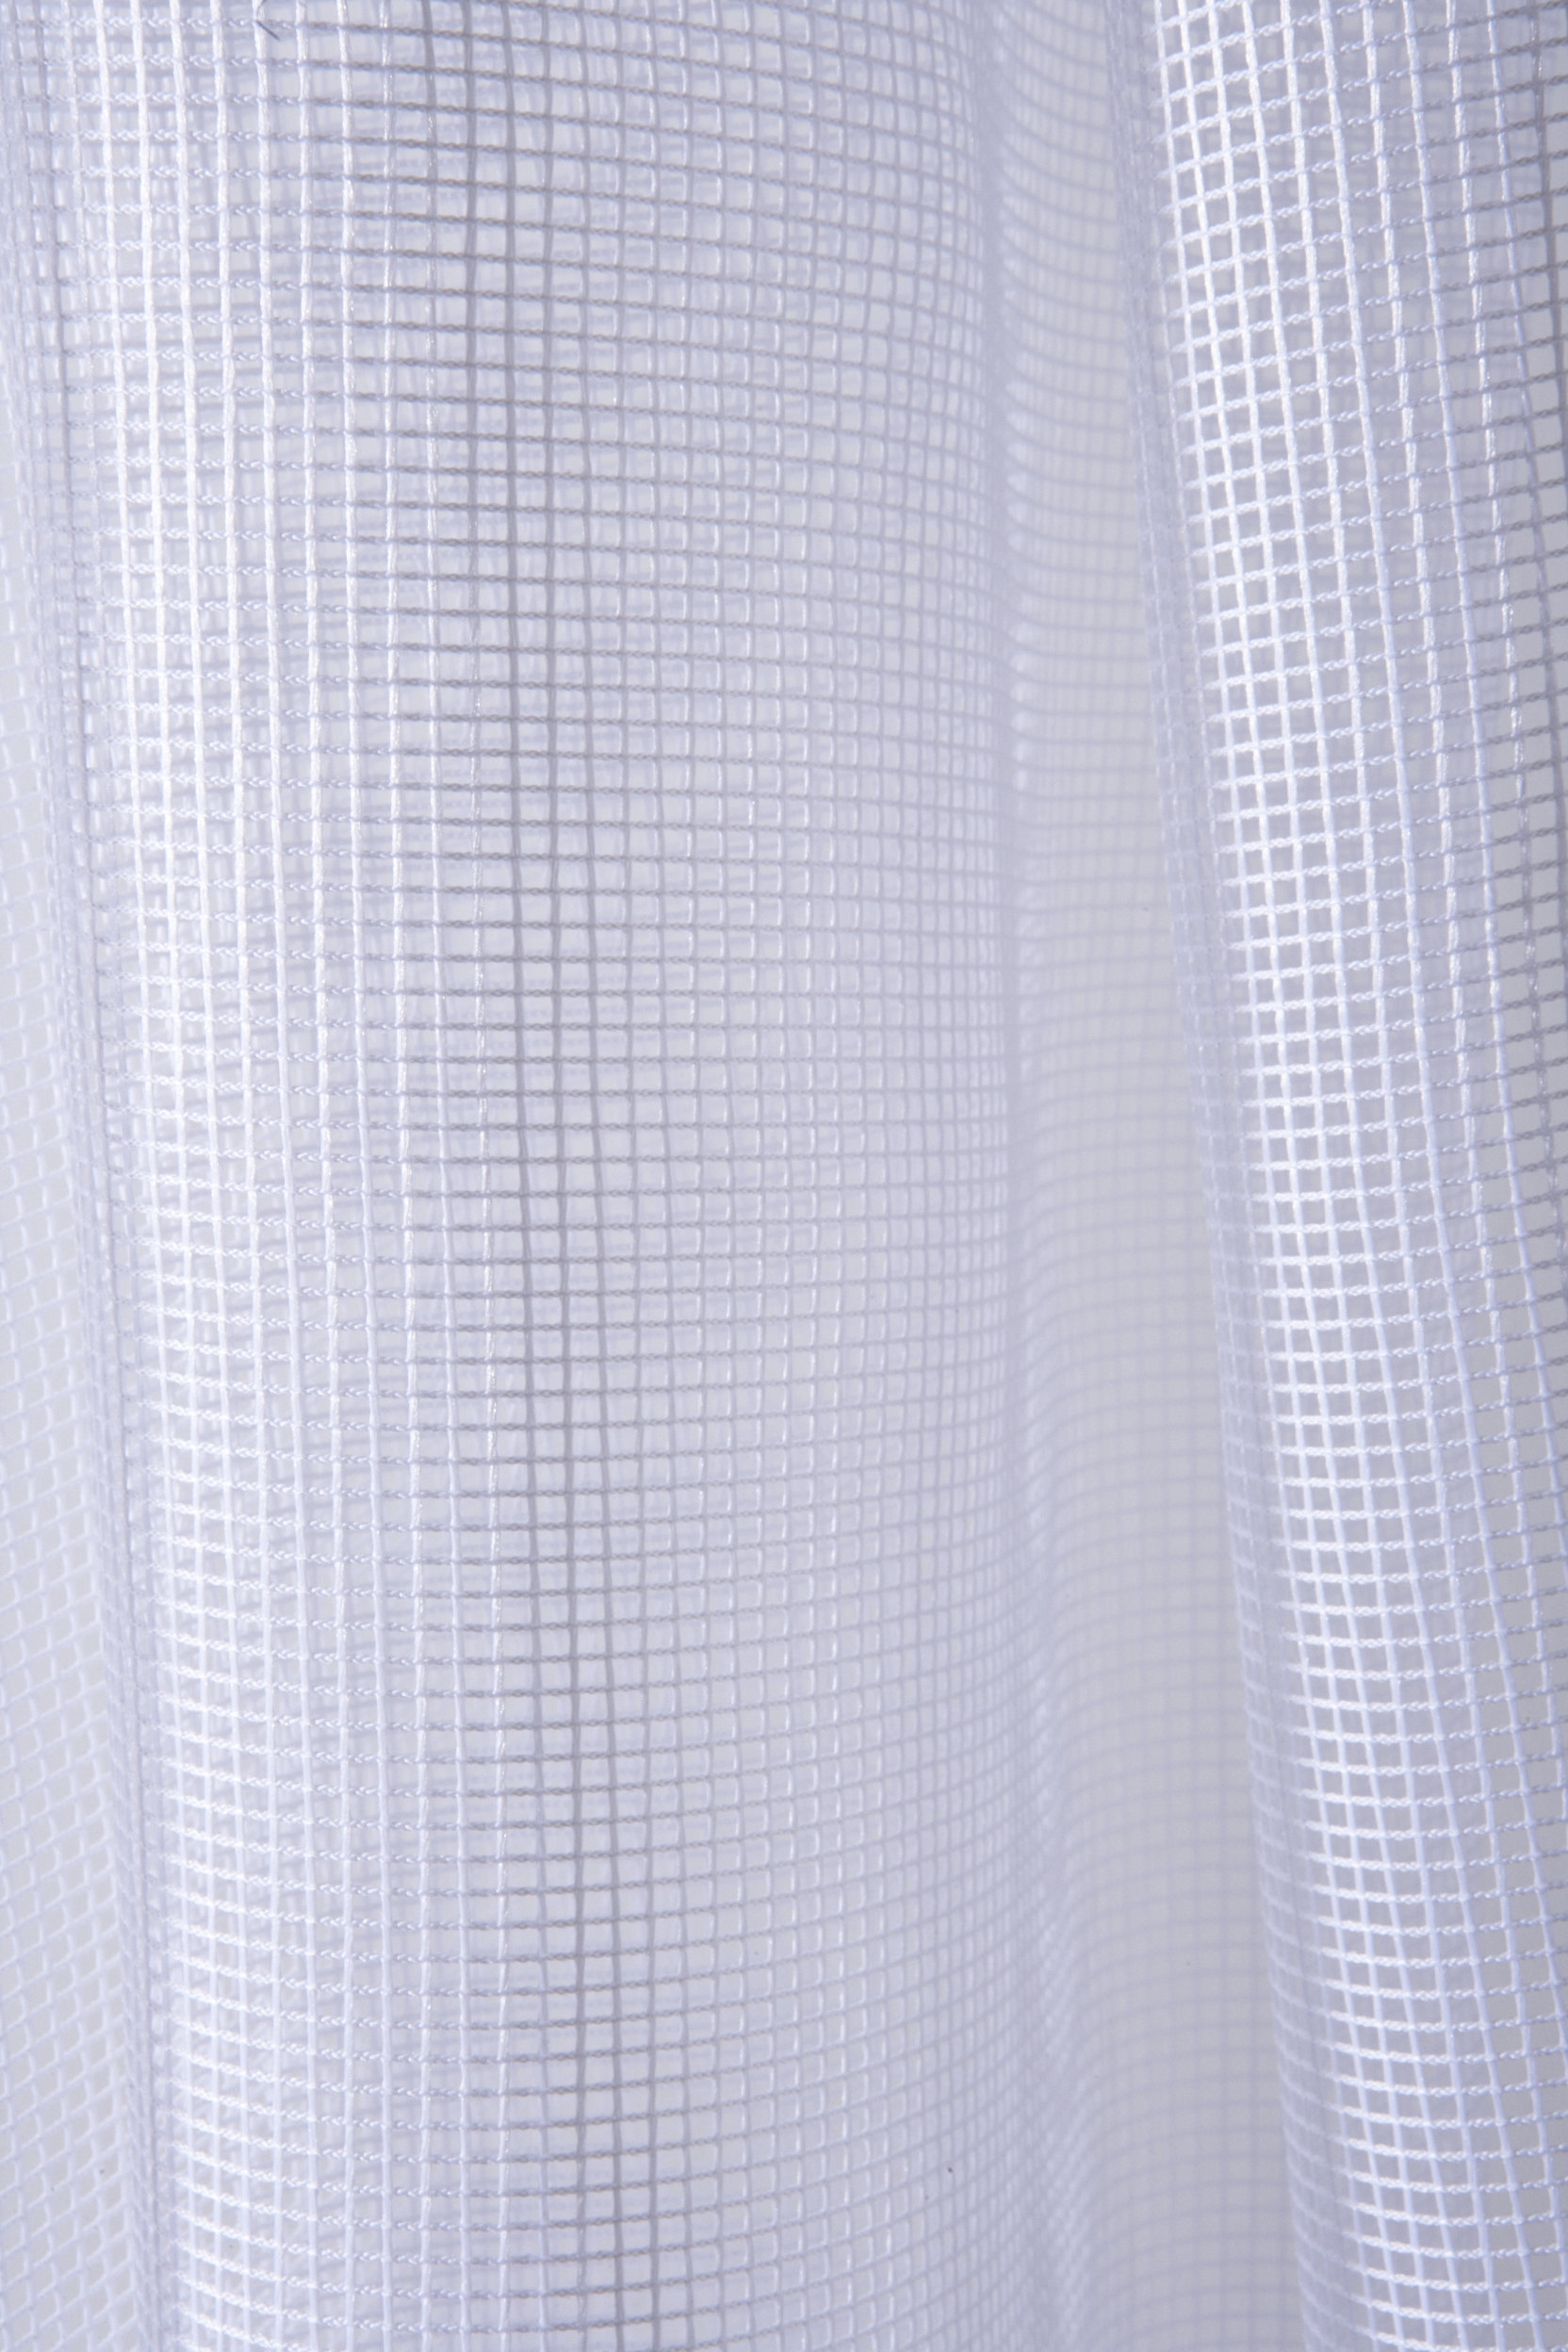 Sheer Fabric Wholesale | Sheer Fabric Crossword | Wholesale Gossamer Fabric